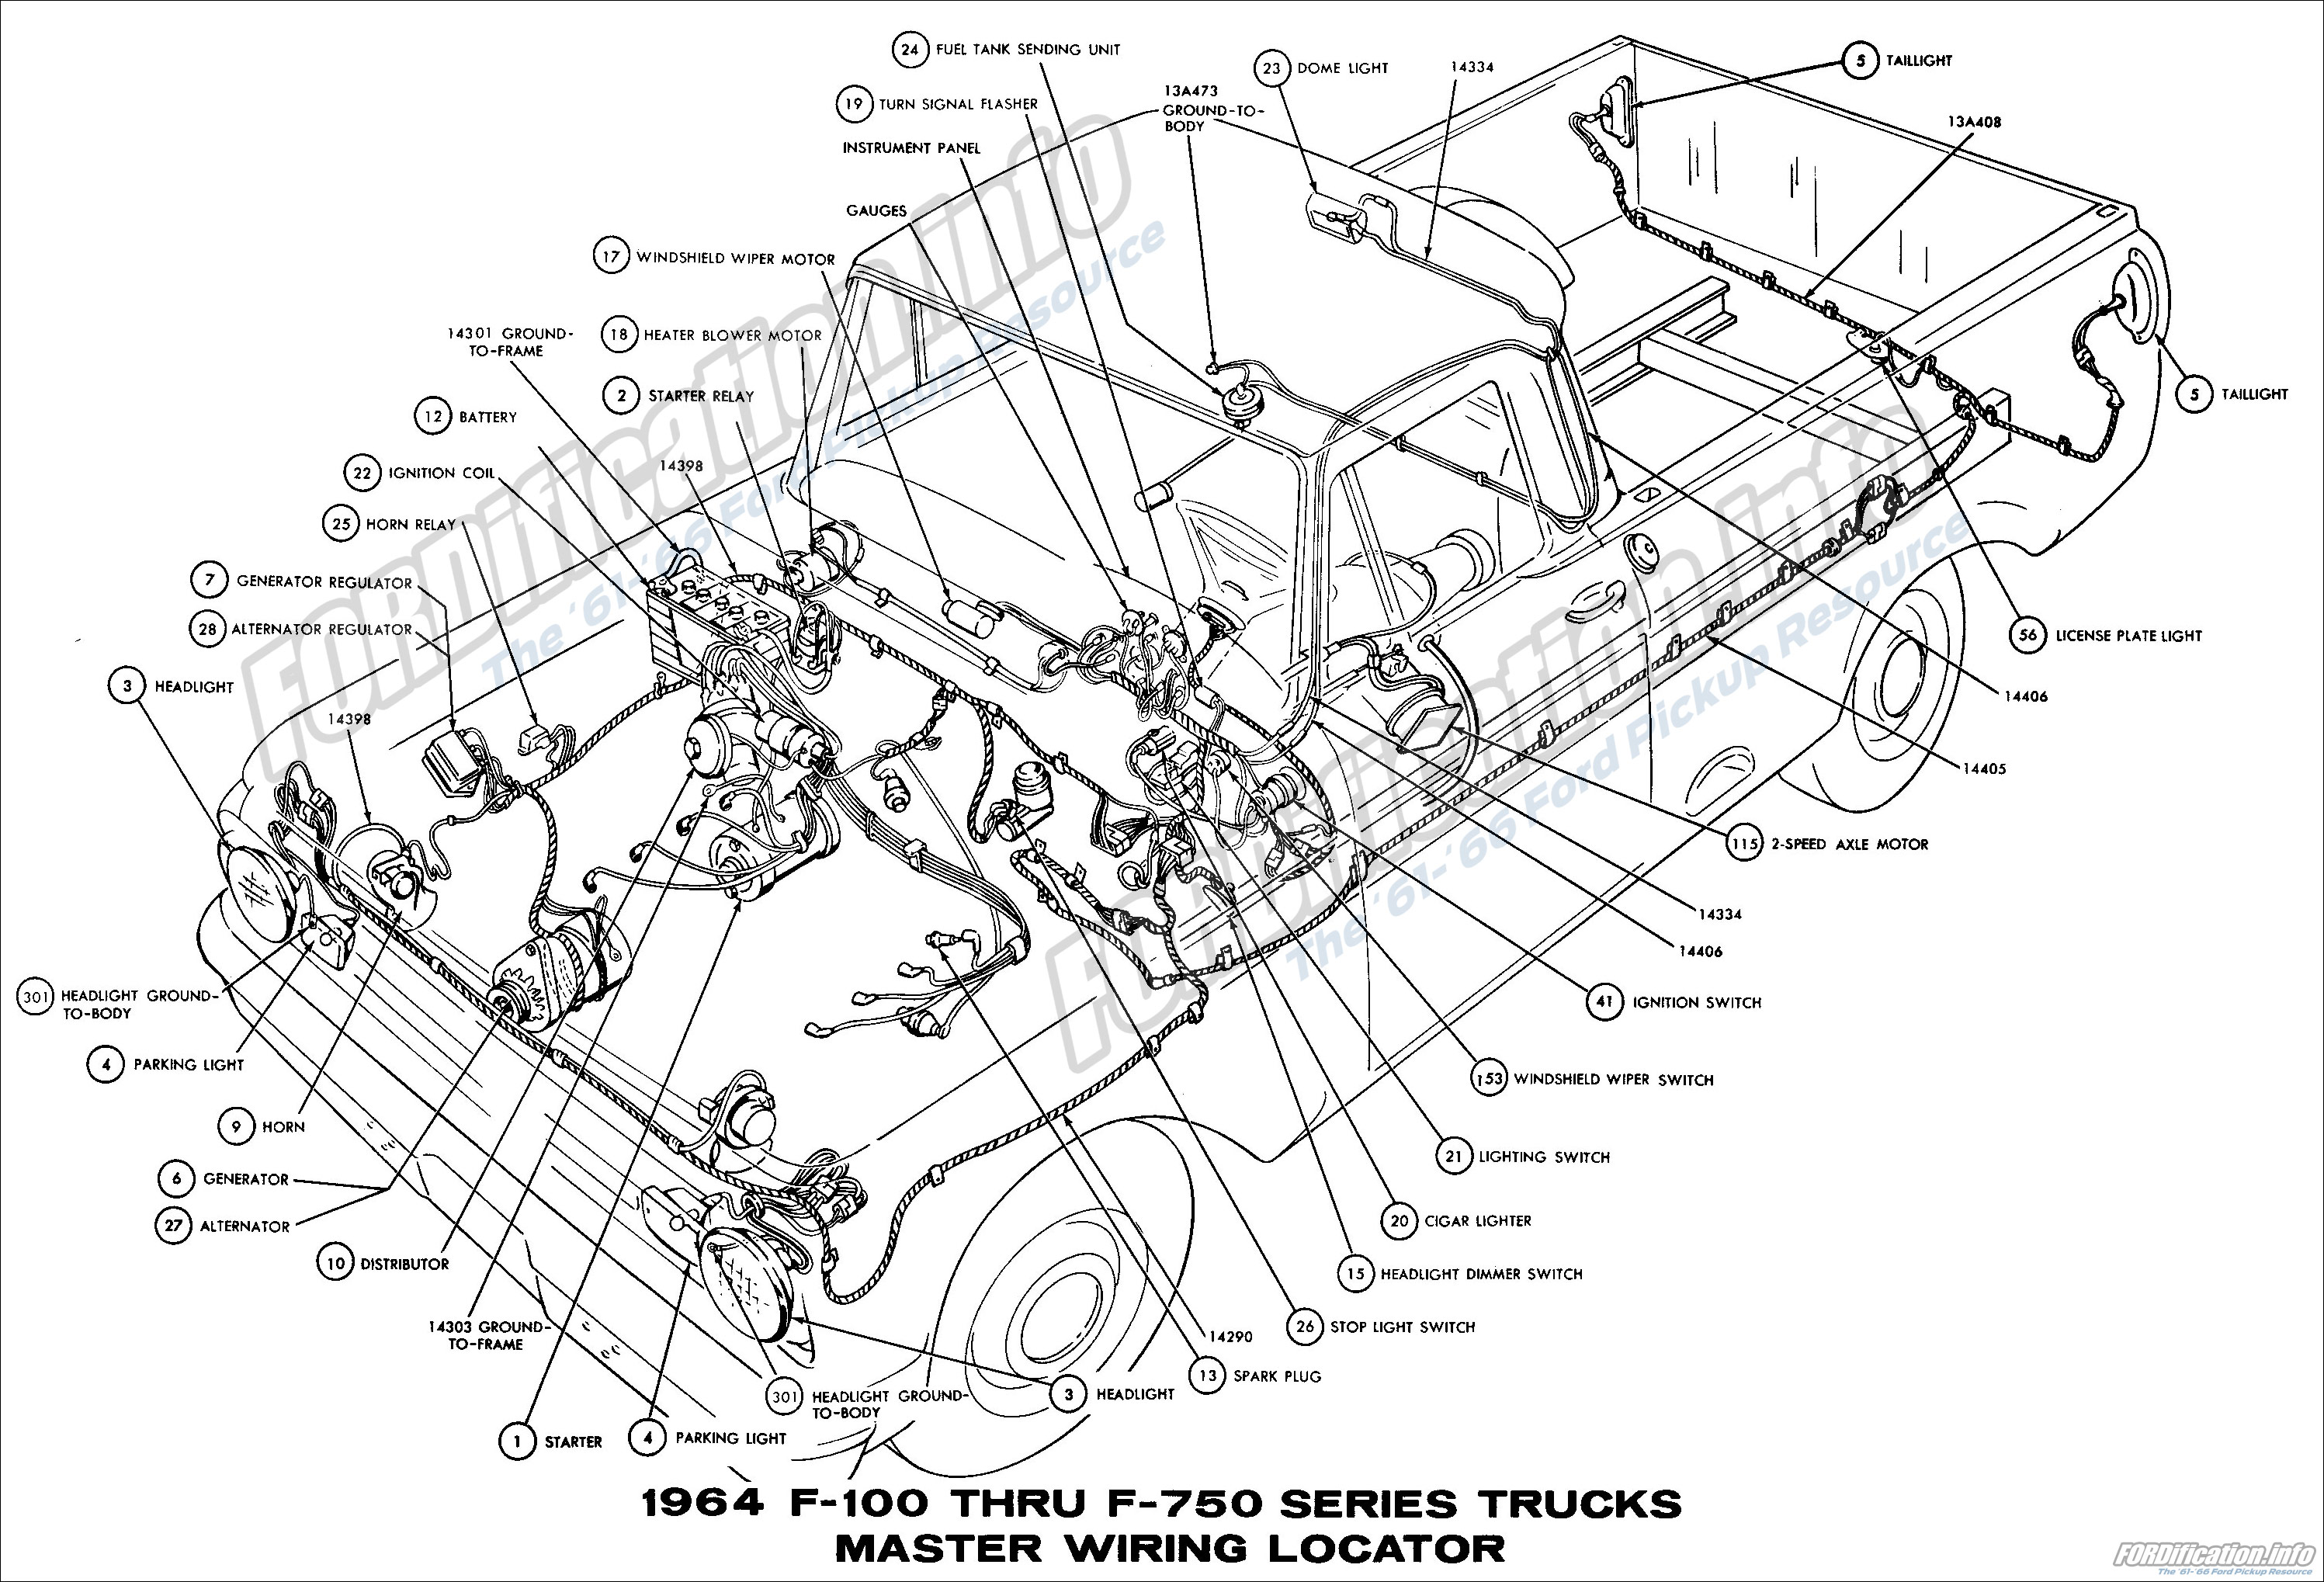 1966 Ford F100 Wiring Diagram Archive Of Automotive Pick Up Engine Heater Simple Rh David Huggett Co Uk